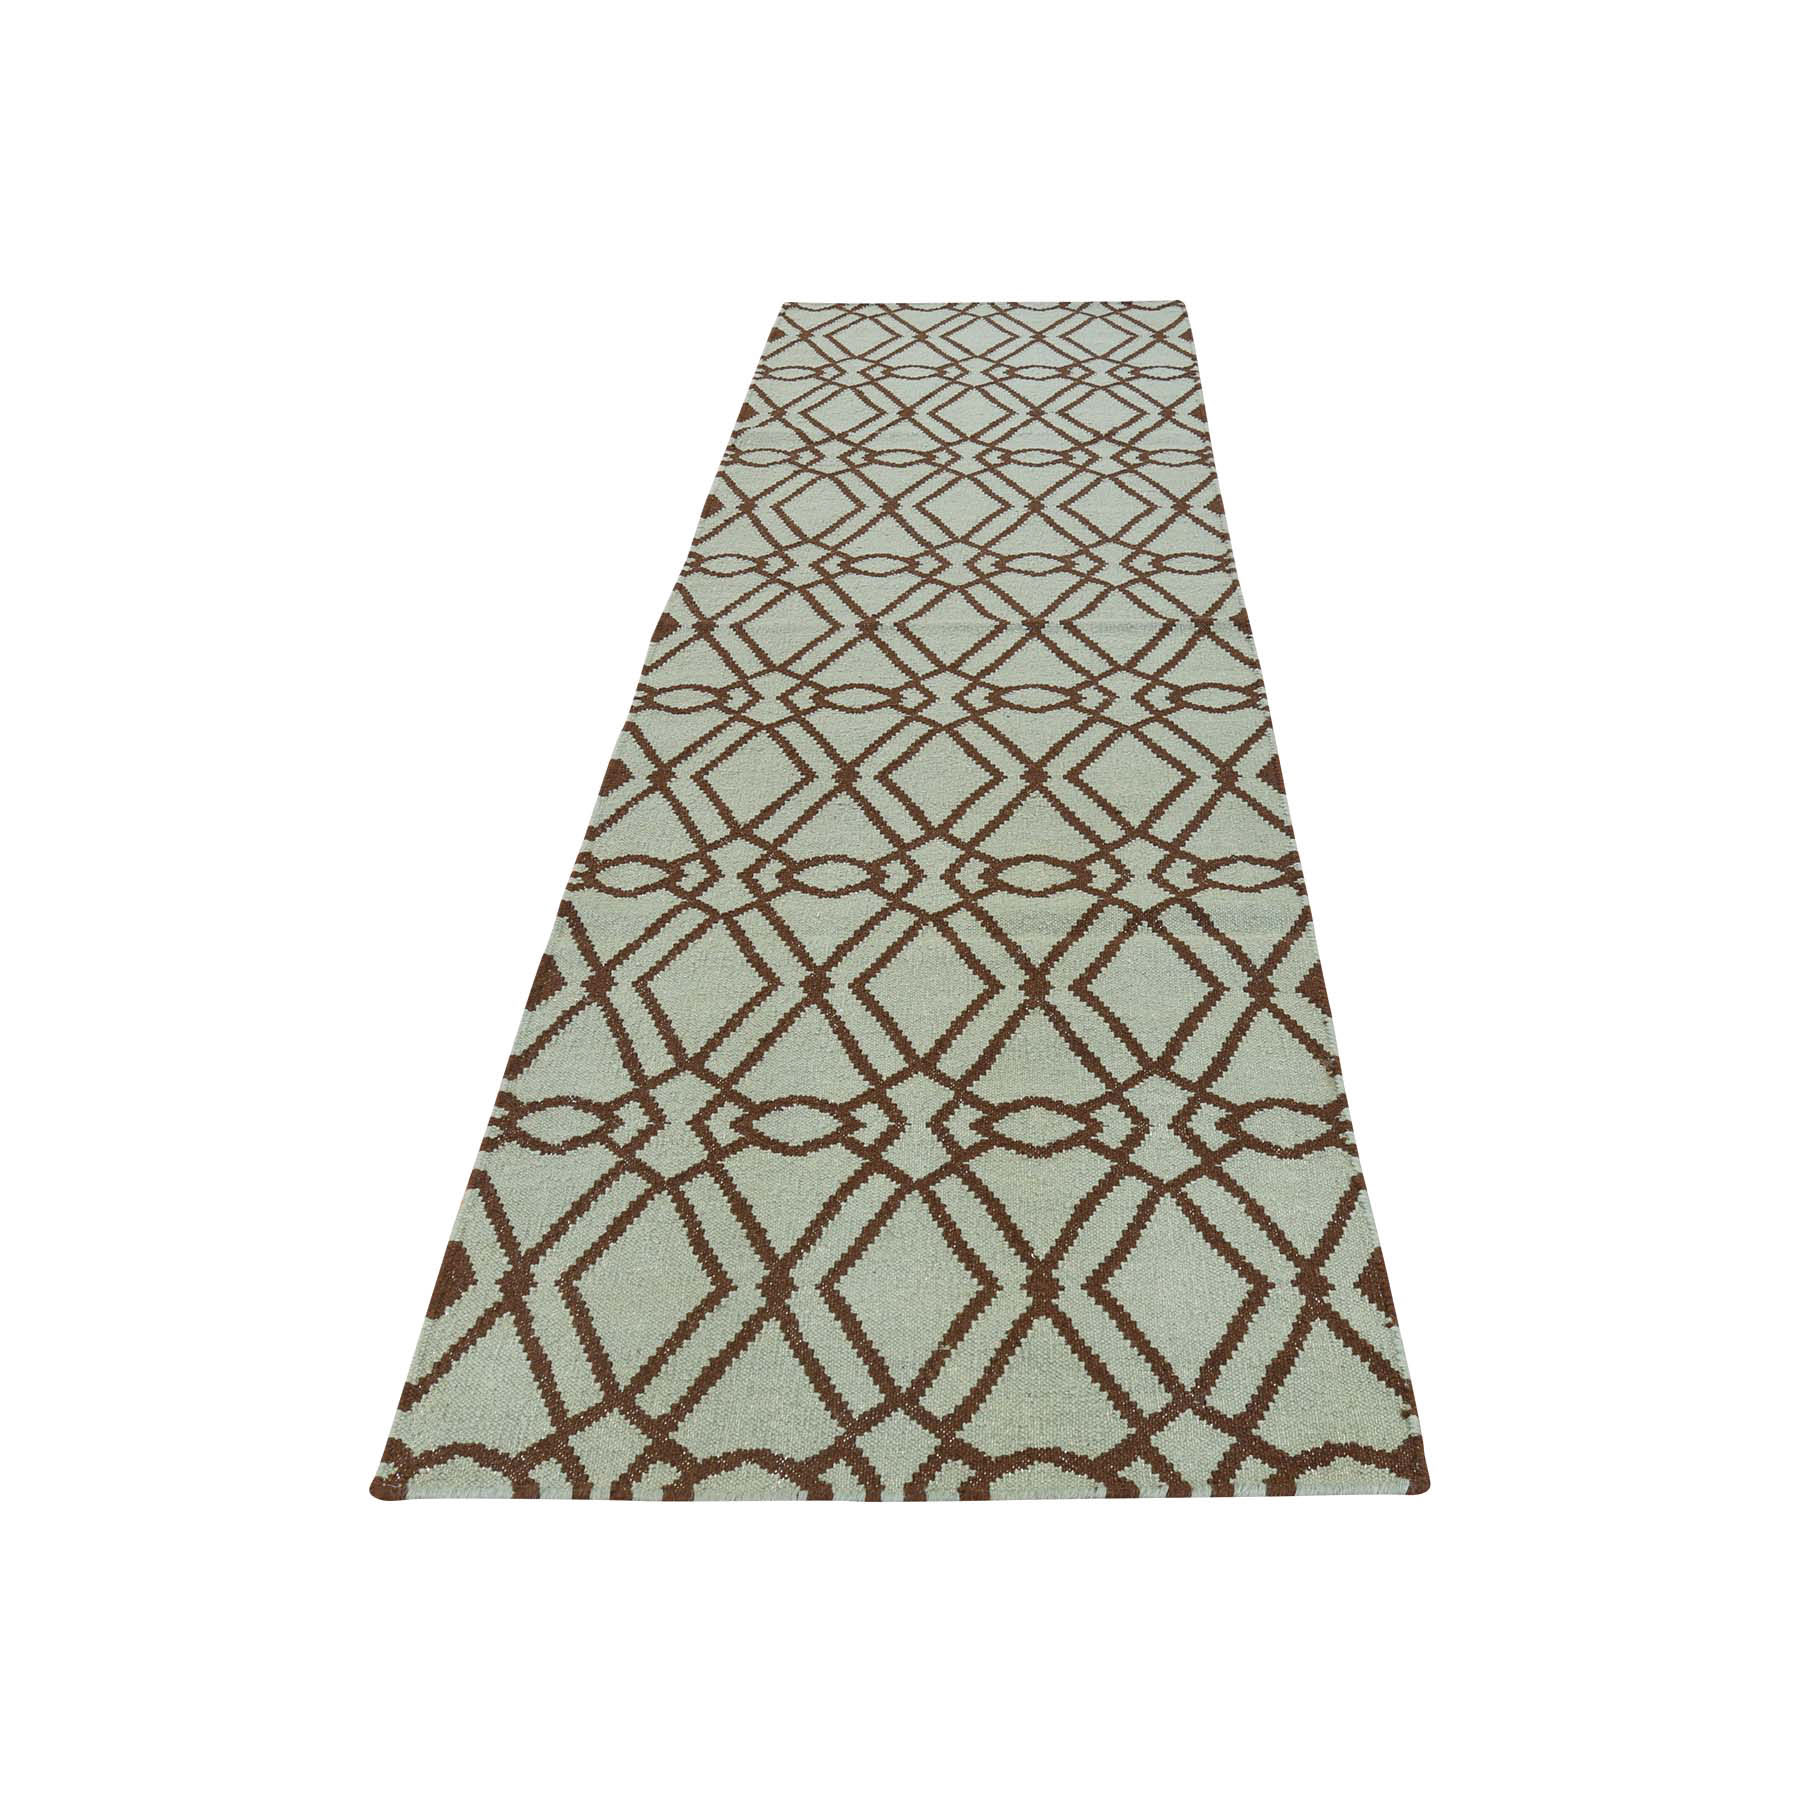 2'9''X11'9'' Hand Woven Reversible Flat Weave Durie Kilim Runner Rug moac786d